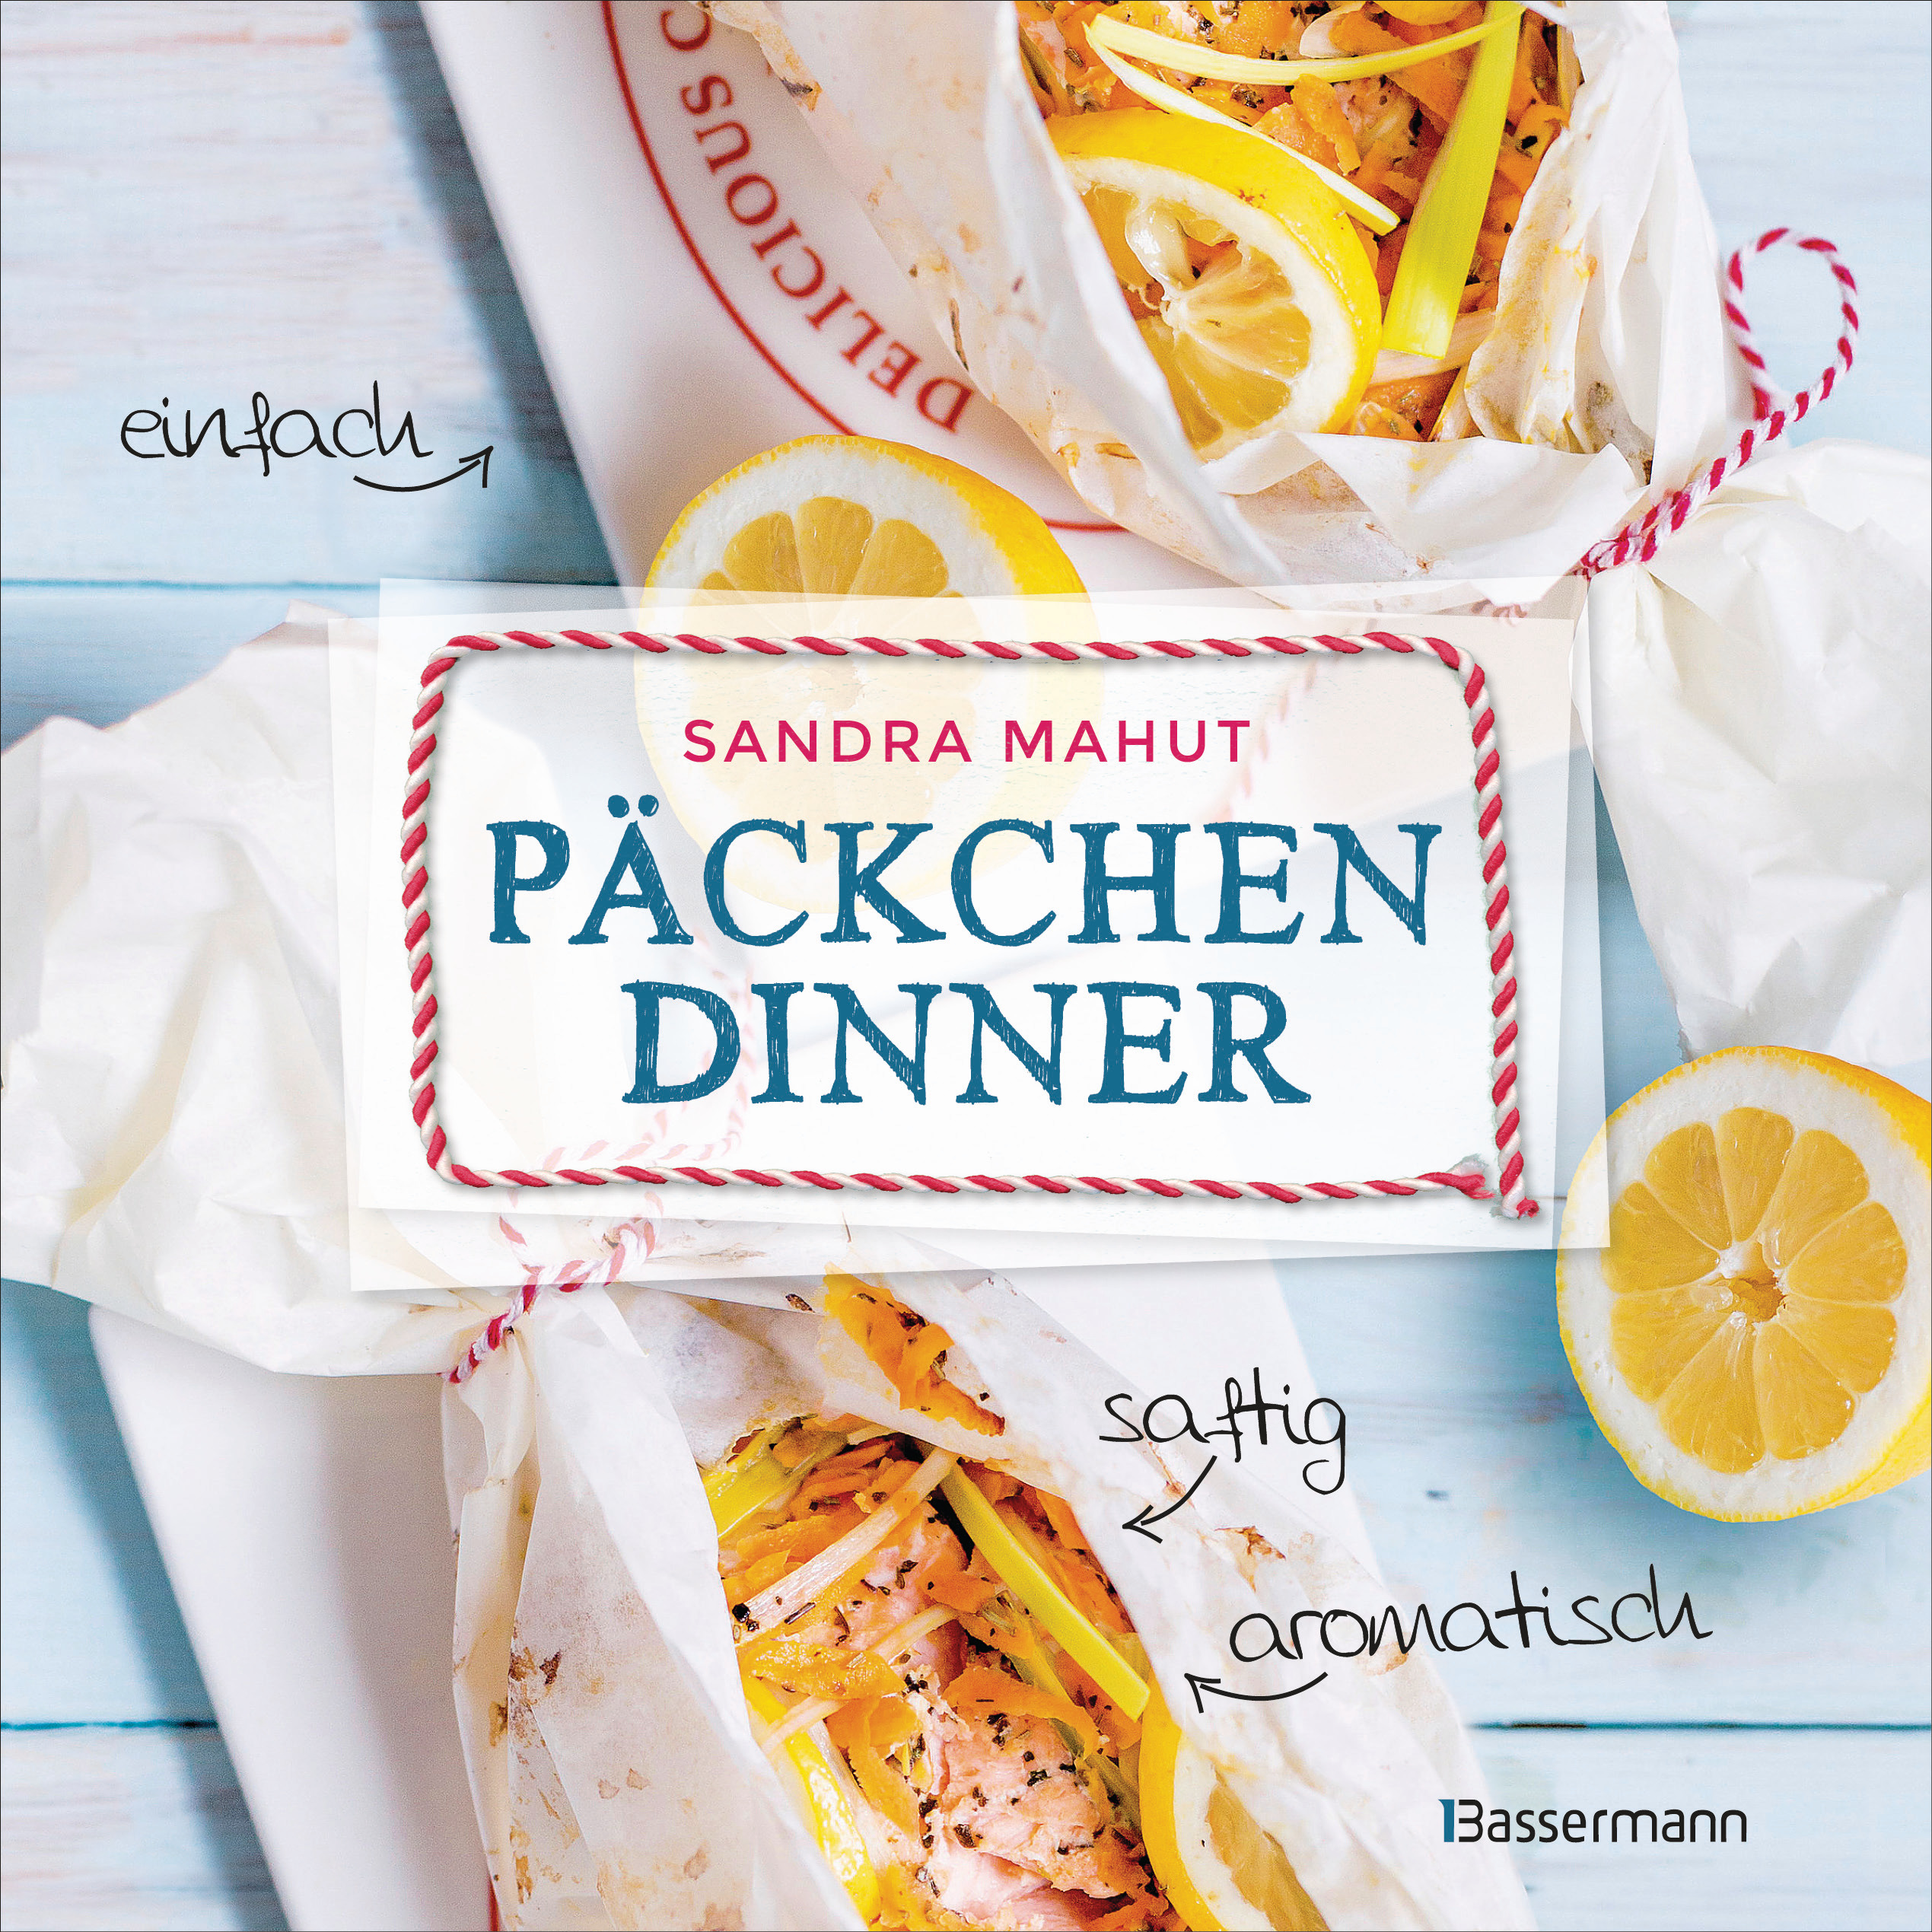 https://www.randomhouse.de/content/edition/covervoila_hires/Mahut_SPaeckchen-Dinner_201117.jpg